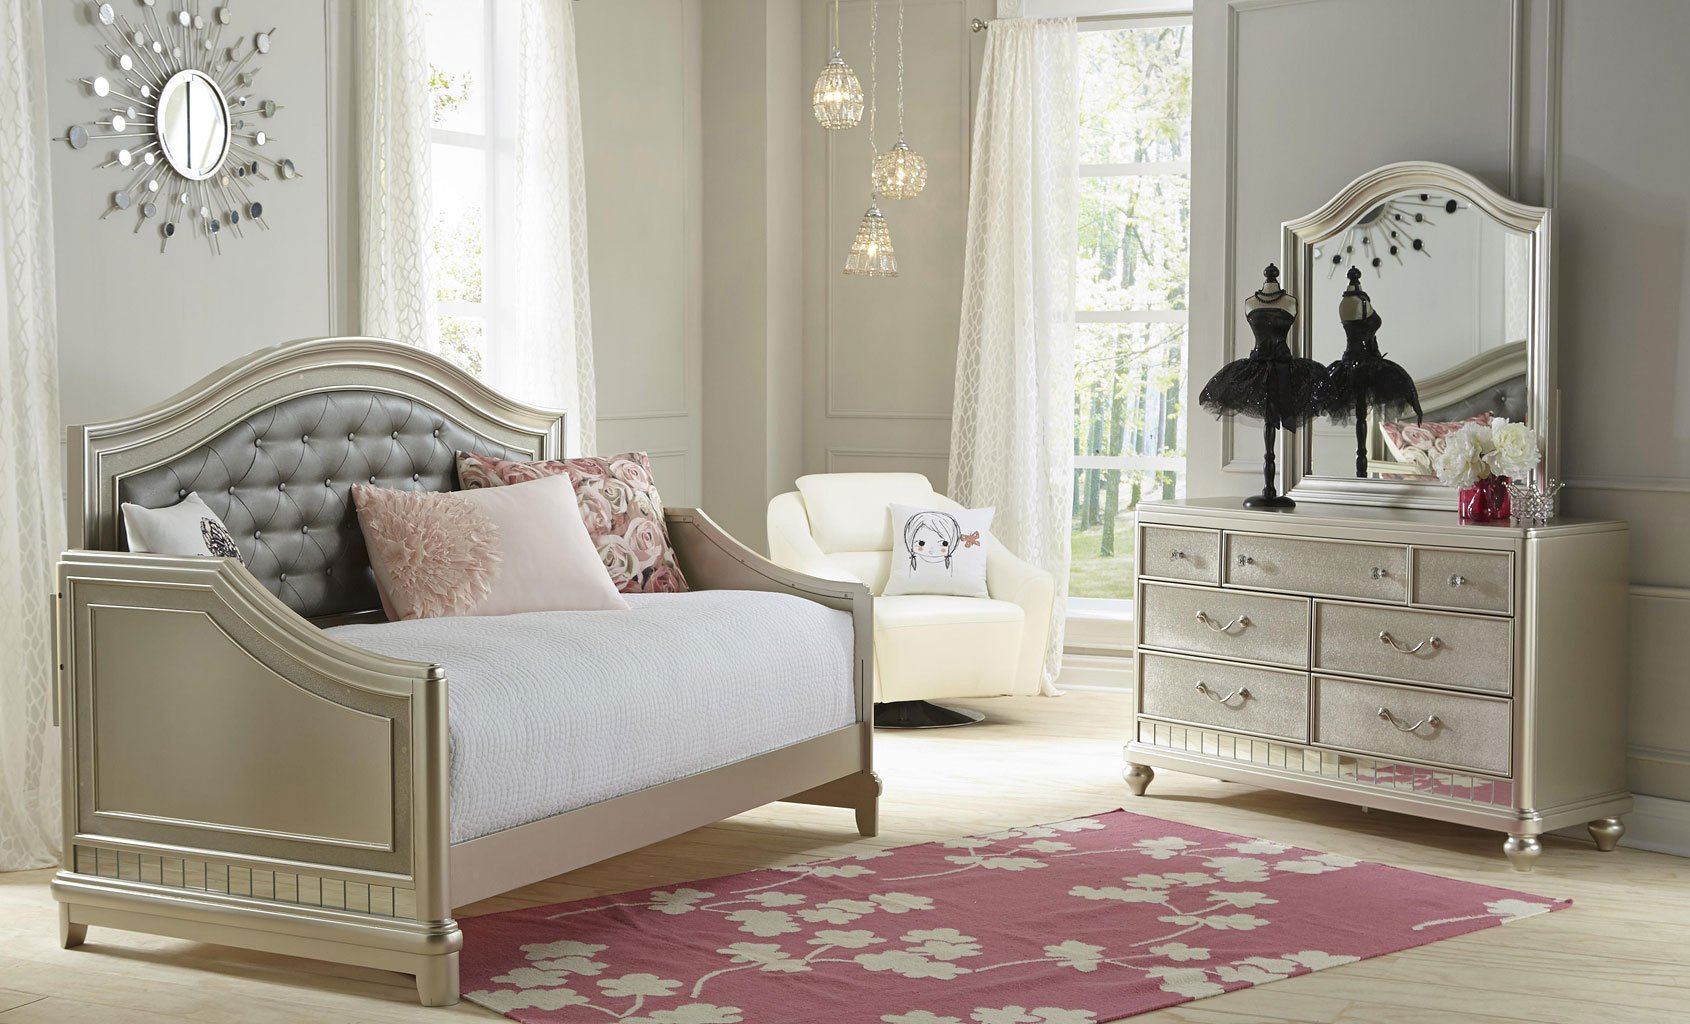 Lil Diva Daybed Bedroom Set Samuel Lawrence Furniture